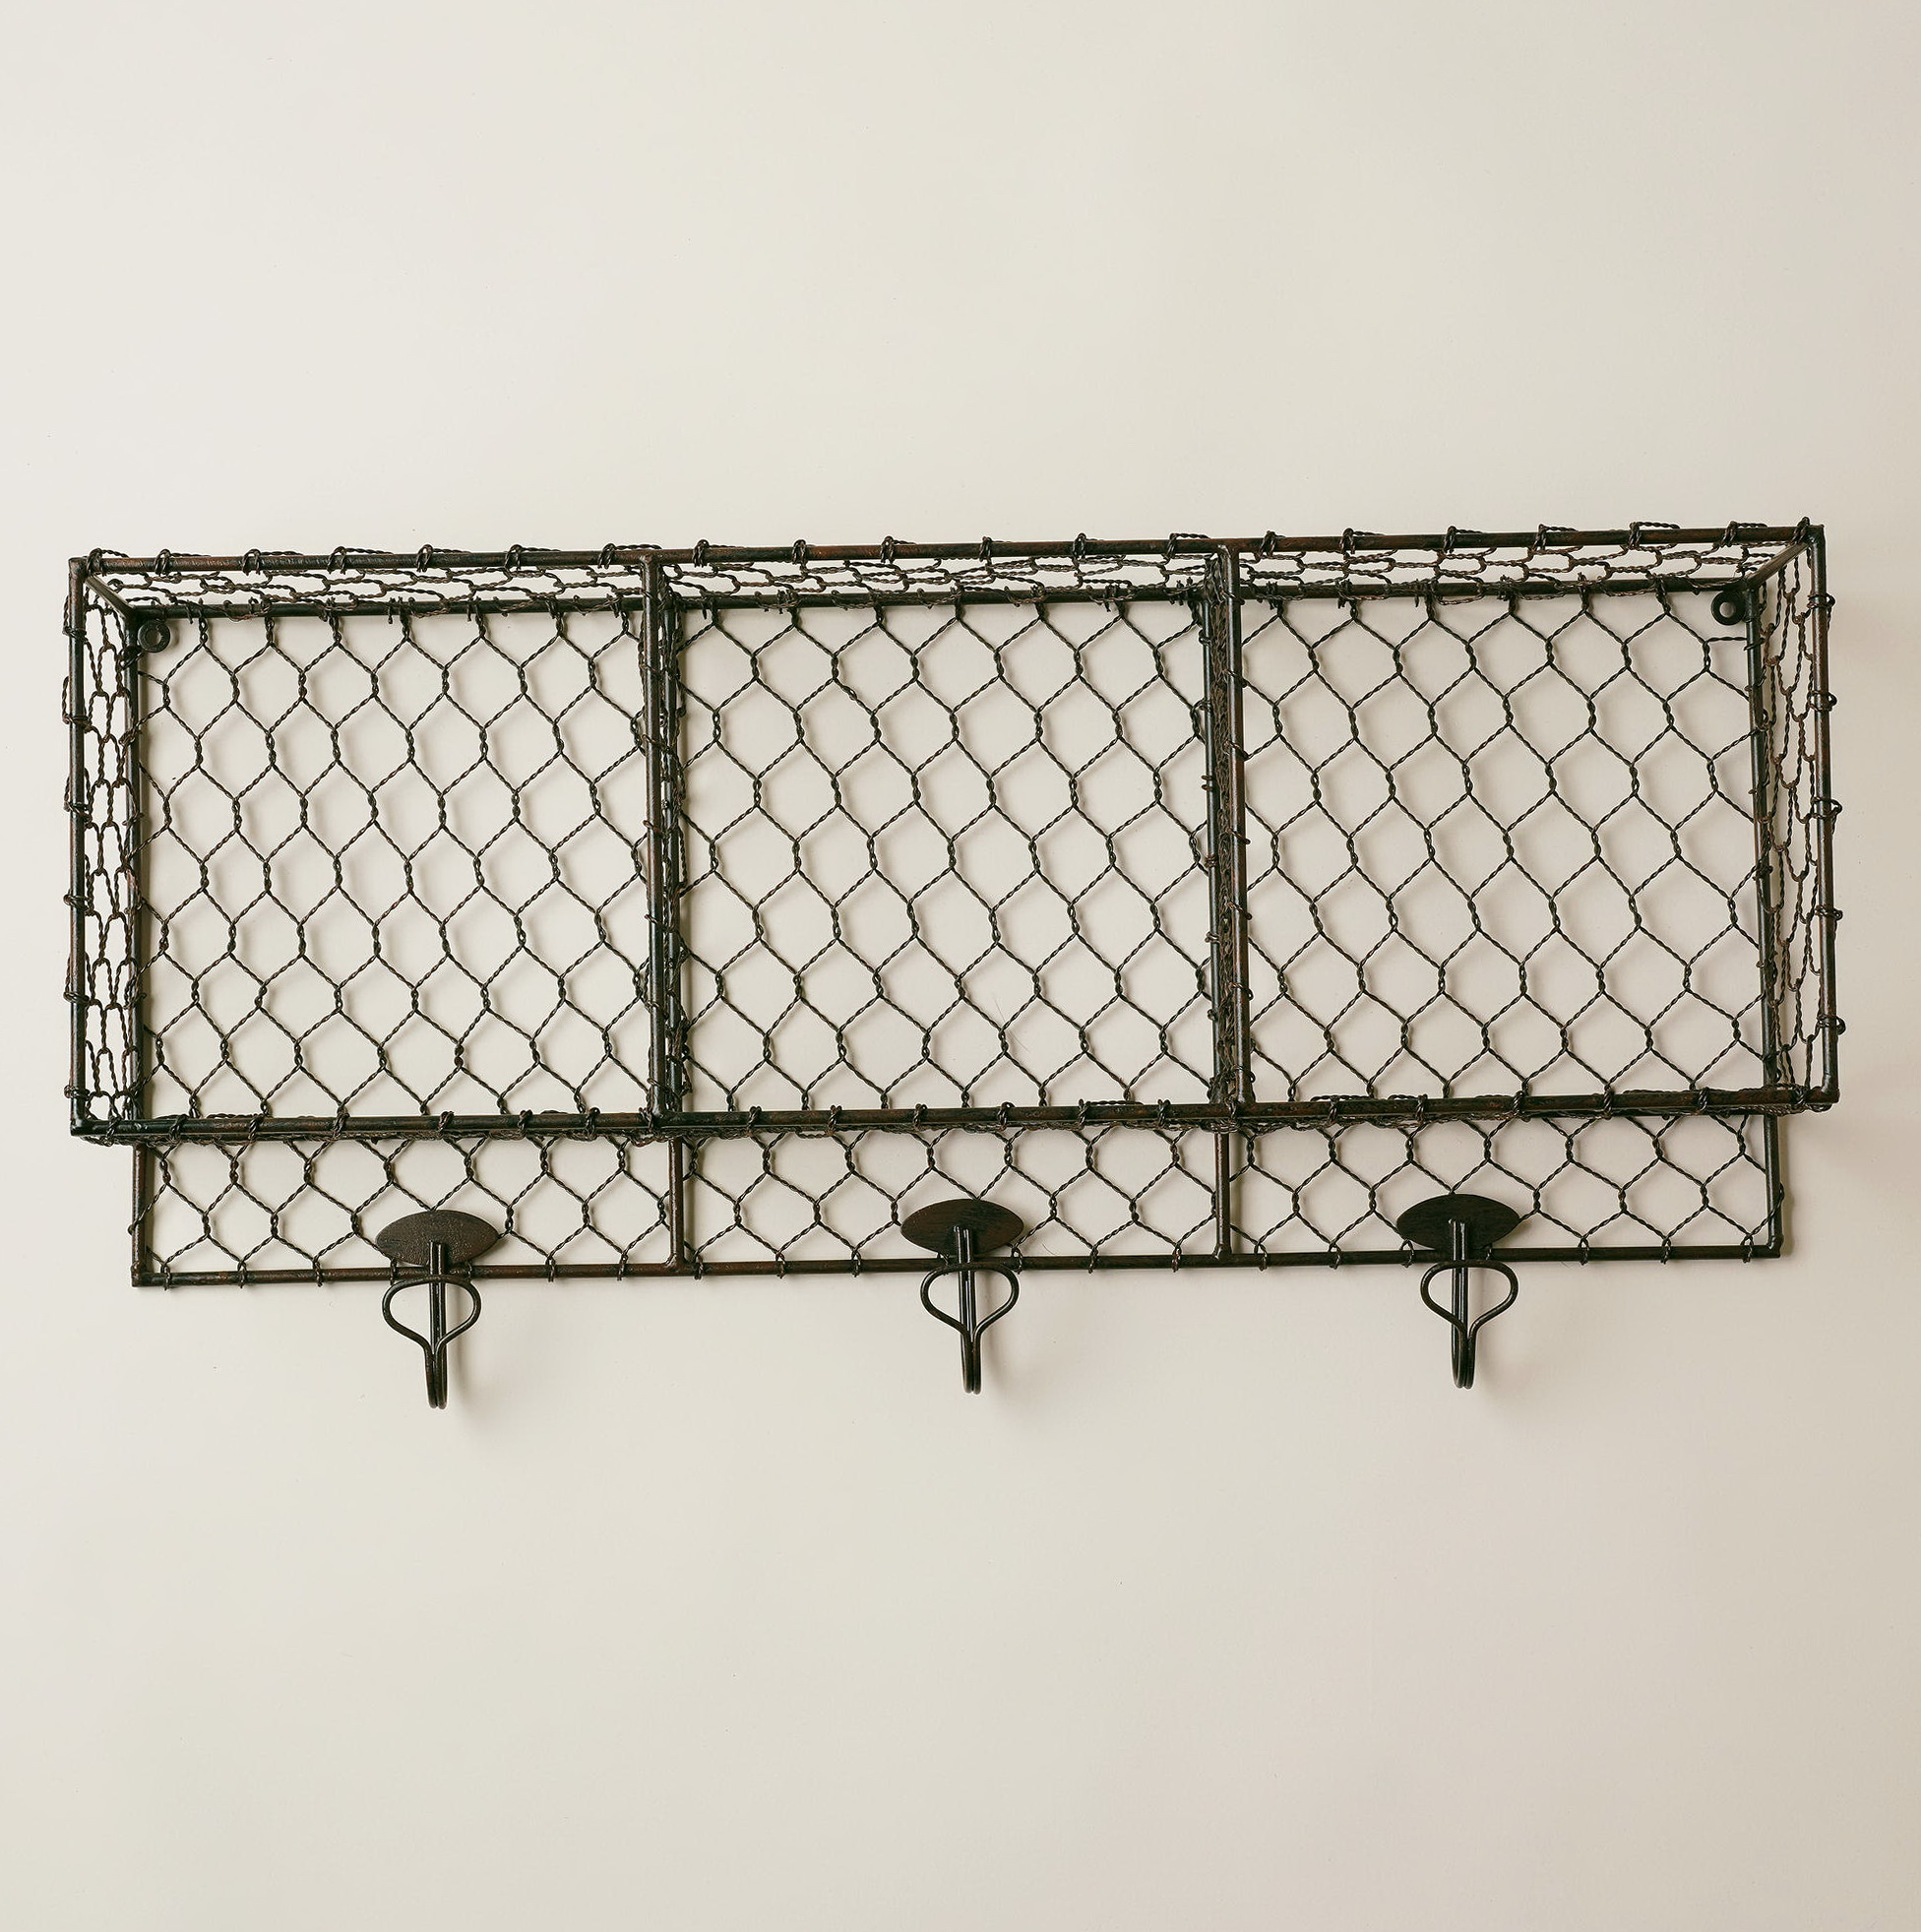 Wall Mount Wire Shelving Units